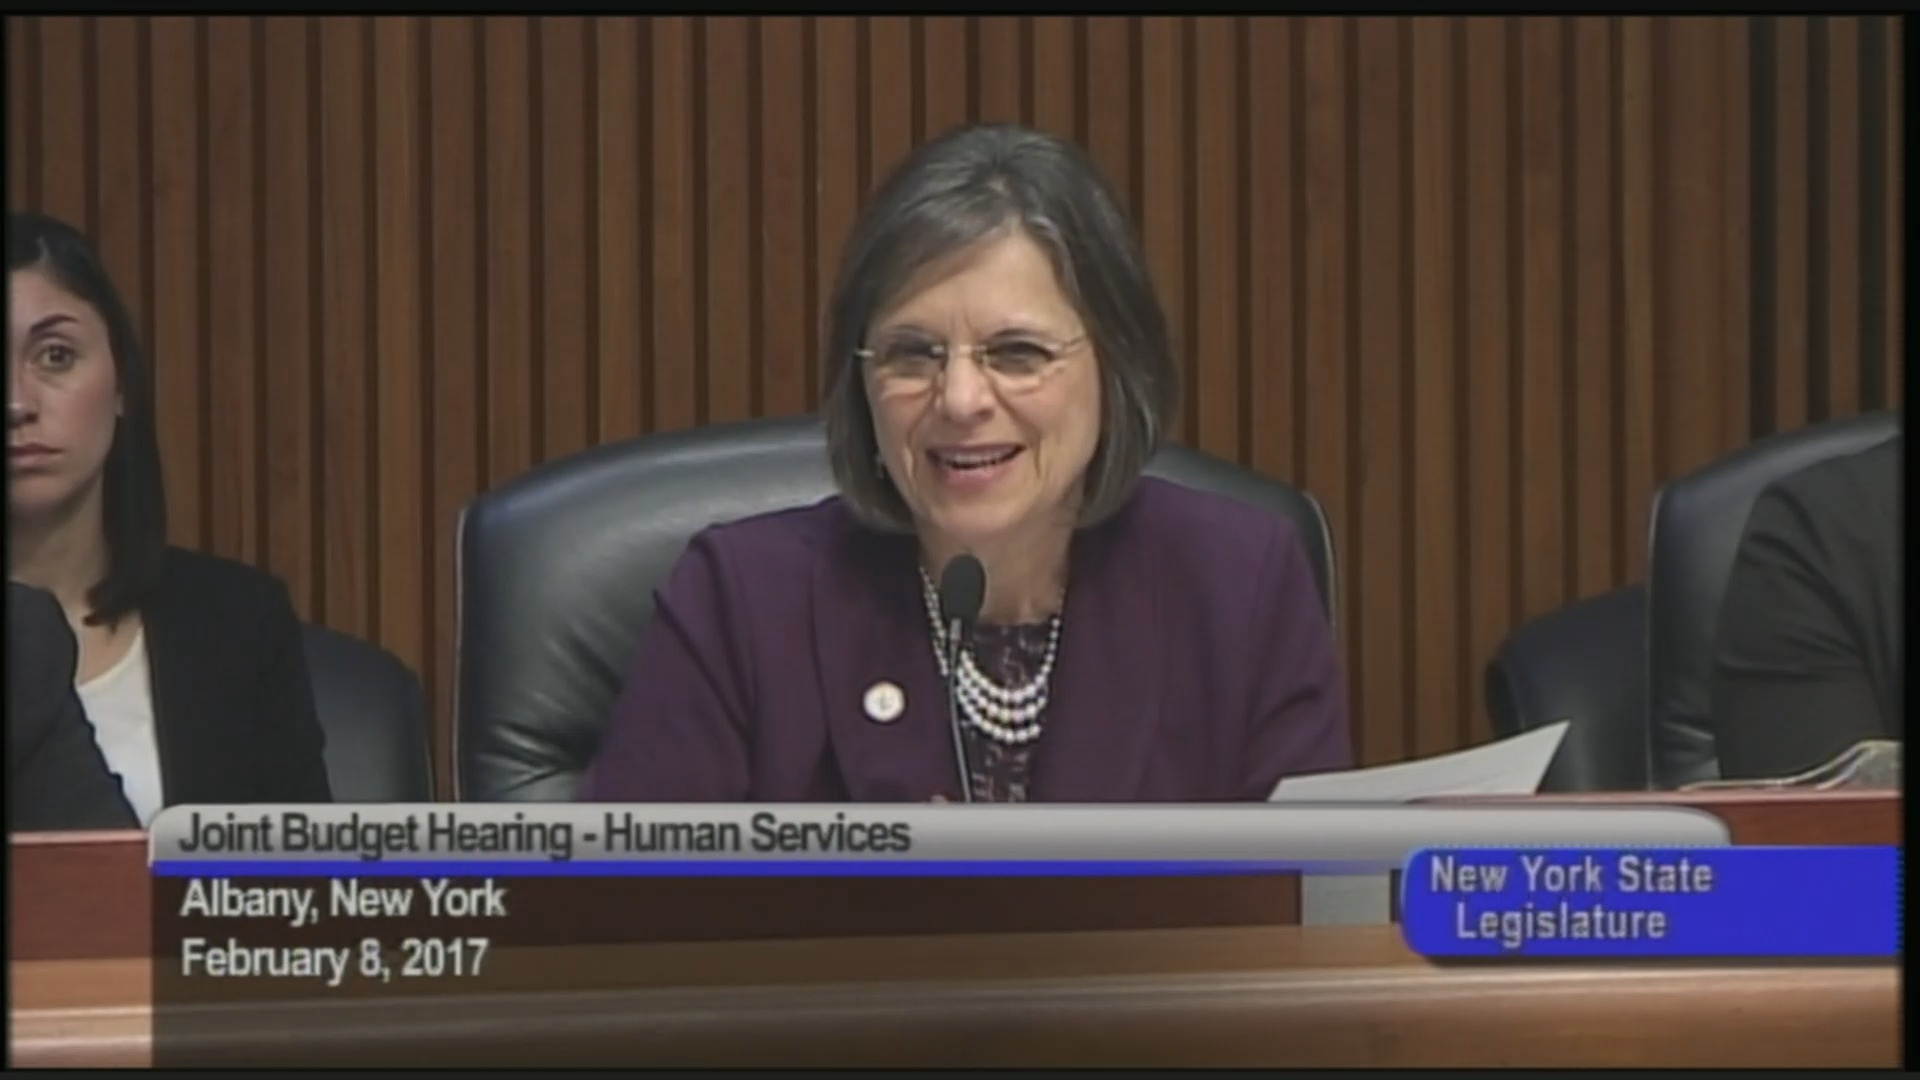 Joint Budget Hearing on Funding for Human Services